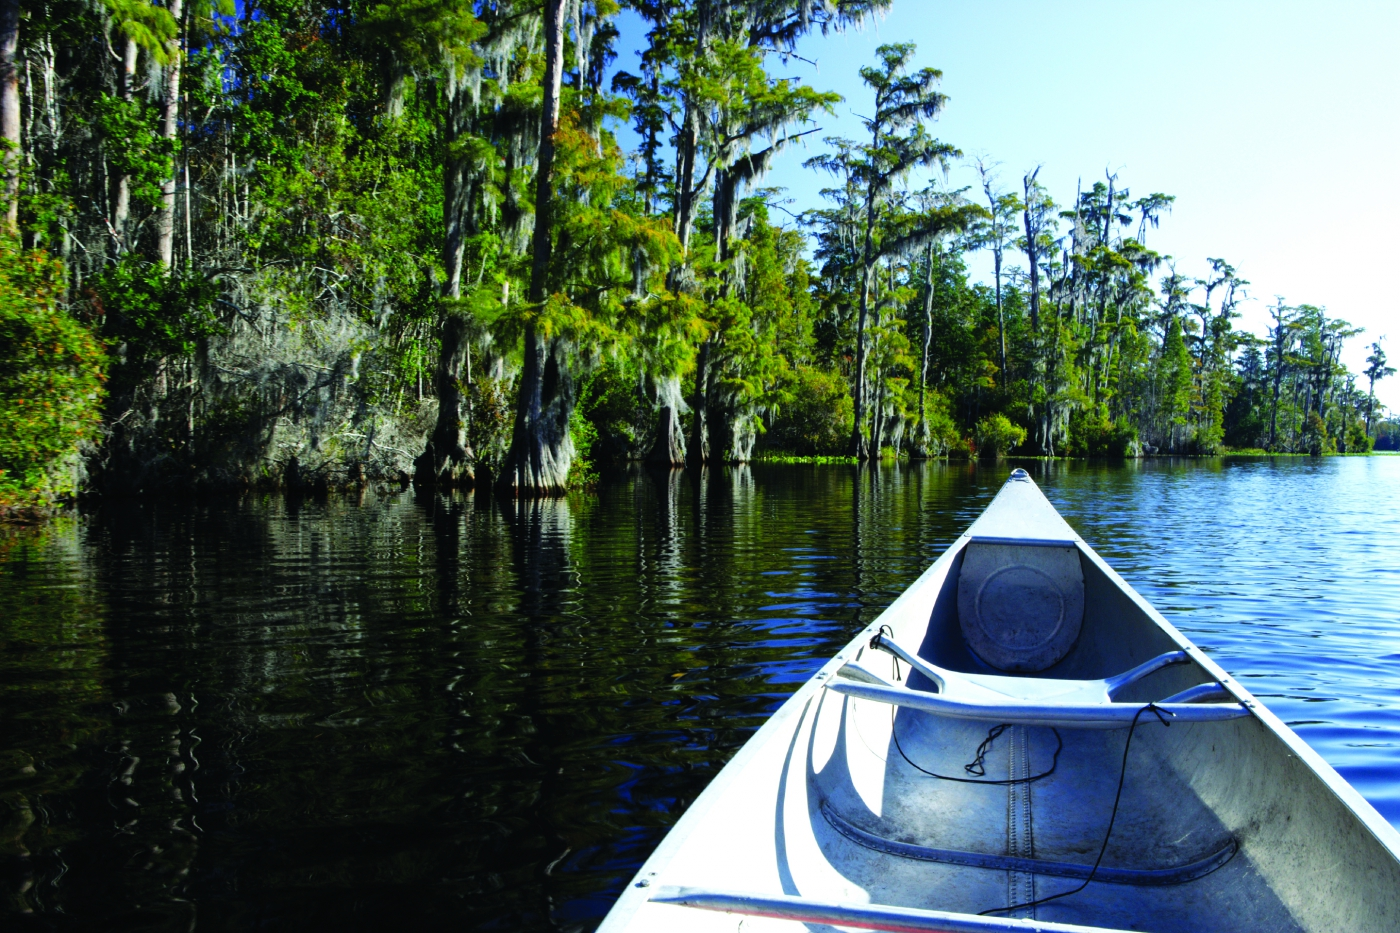 Swamps, marshlands, the ocean. Any water you want, Louisiana has it!